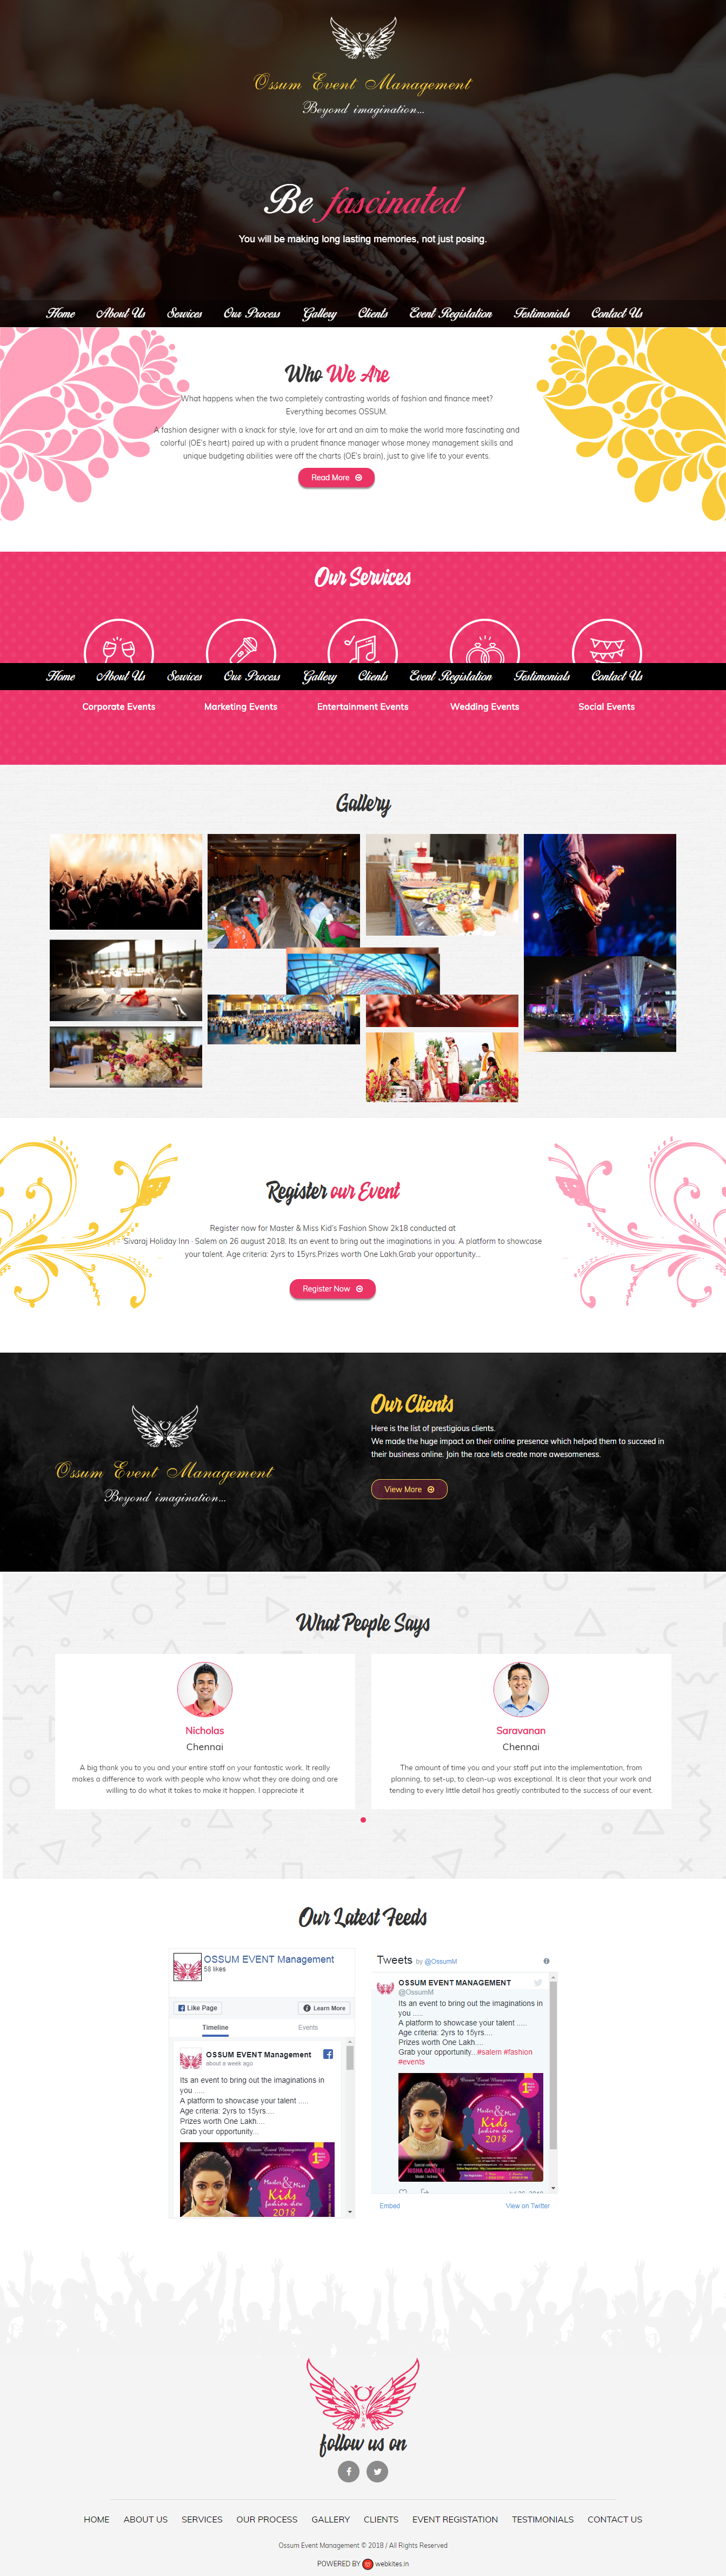 Dynamic websites for ossum event management